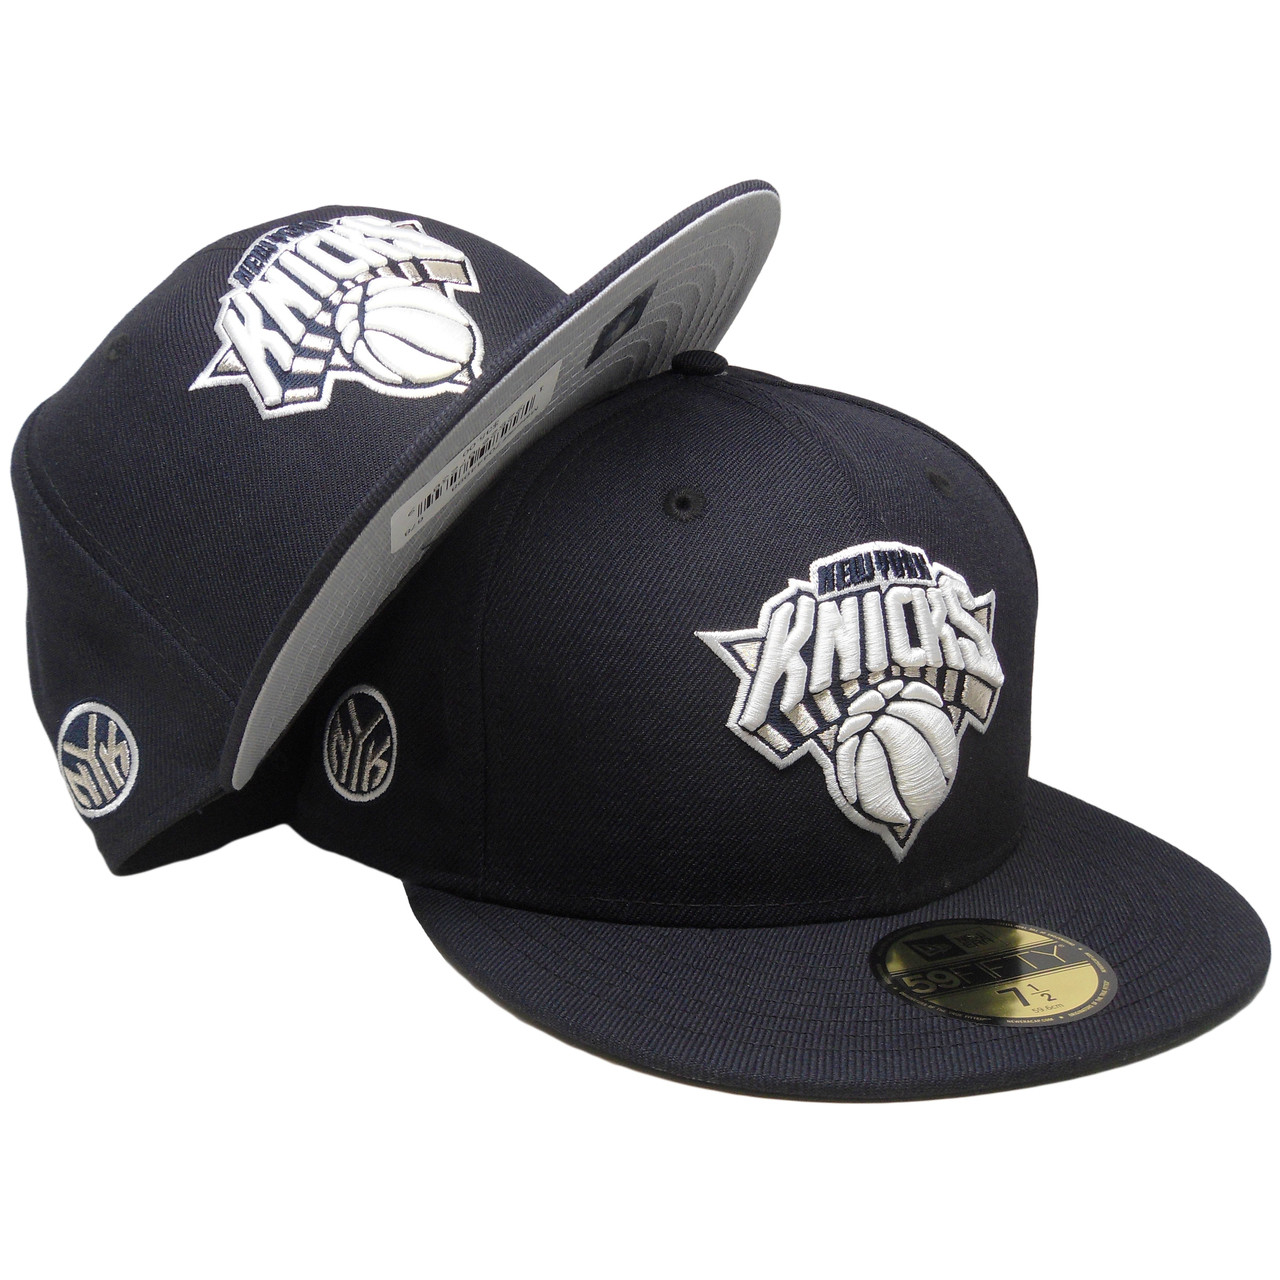 87f50cda New York Knicks New Era Custom Yankees Colorway 59Fifty Fitted - Navy,  White - ECapsUnlimited.com